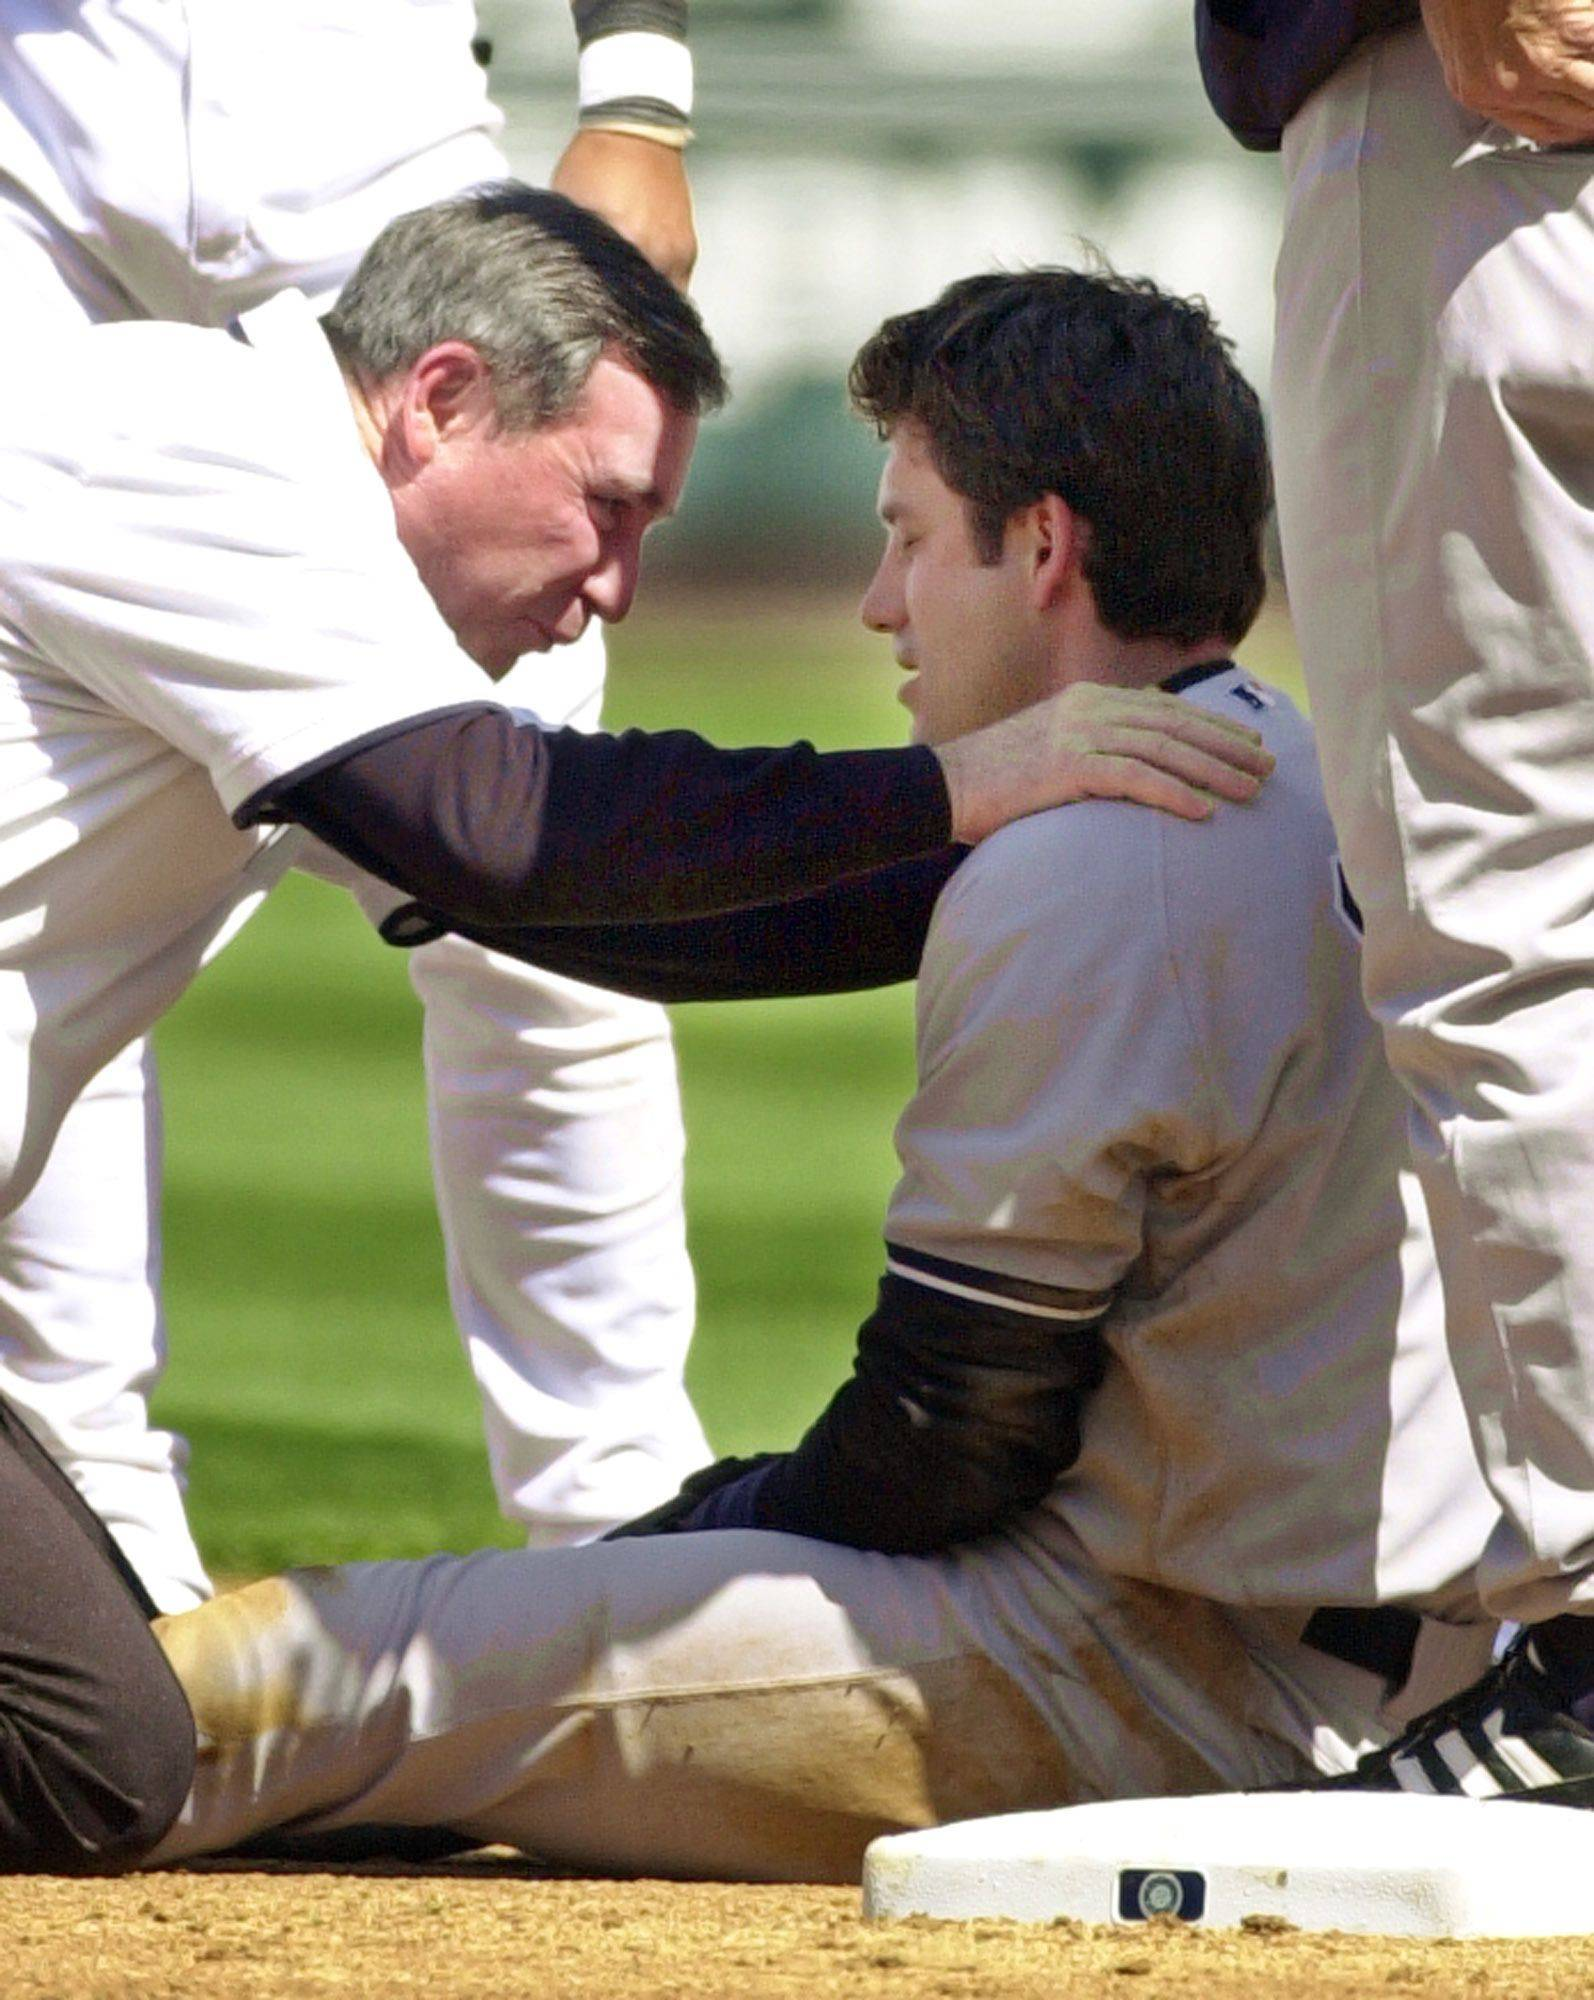 New York Yankees' Robin Ventura, right, is checked by trainer Gene Monahan following a second inning collision with Seattle Mariners shortstop Carlos Guillen Sunday, April 28, 2002, in Seattle. Ventura left the game.